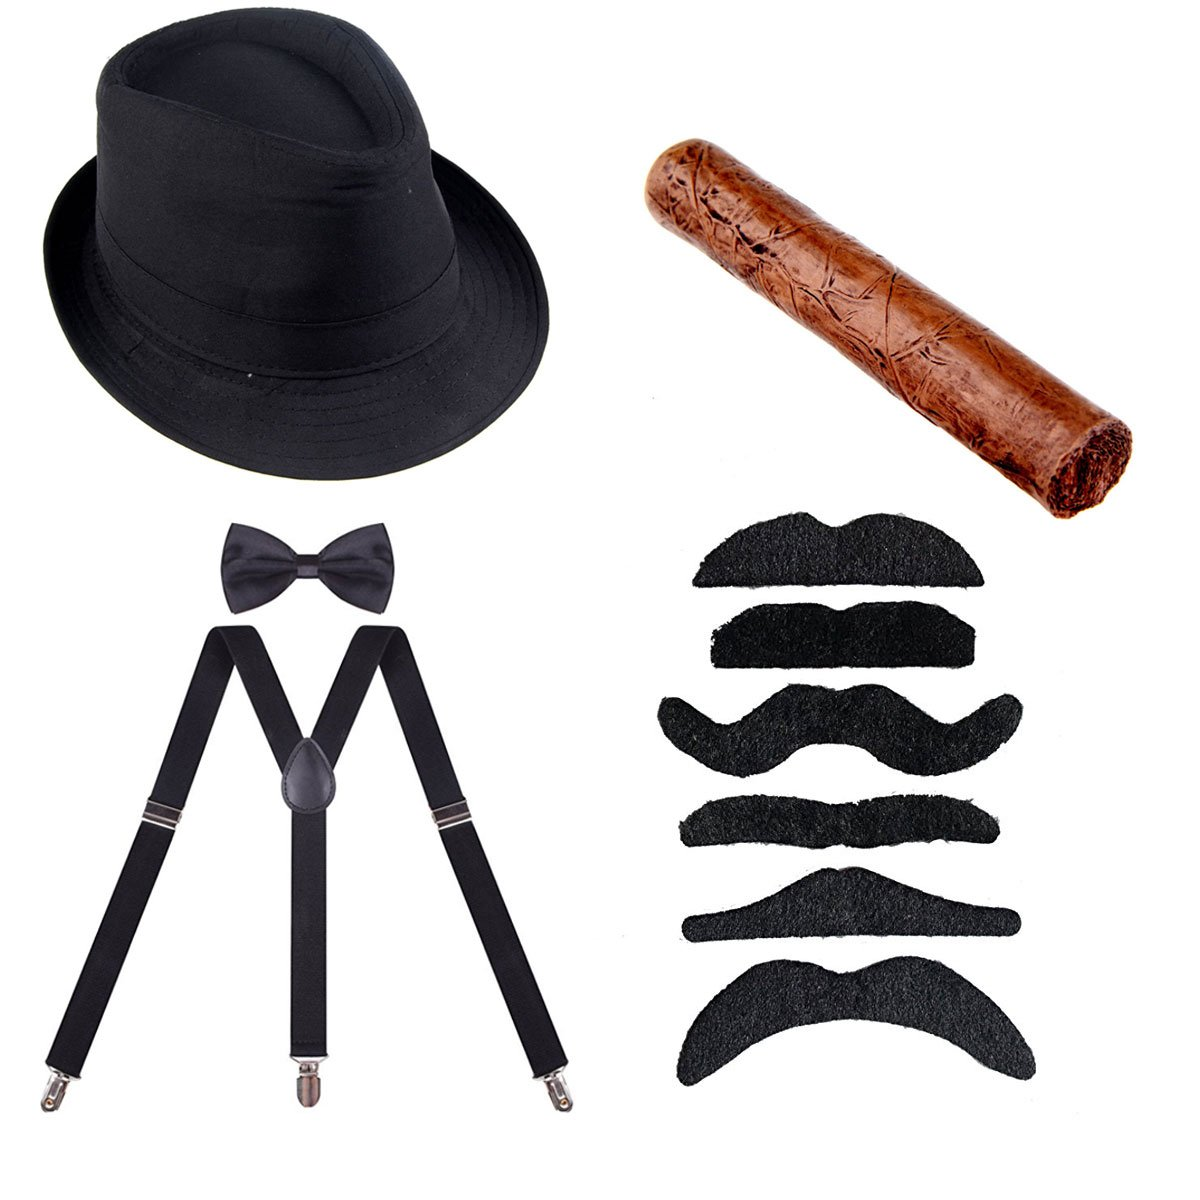 ECOSCO 1920s Mens Costume Accessories Gangster Manhattan Fedora Hat Suspenders Bowtie Toy Cigar Fake Mustache